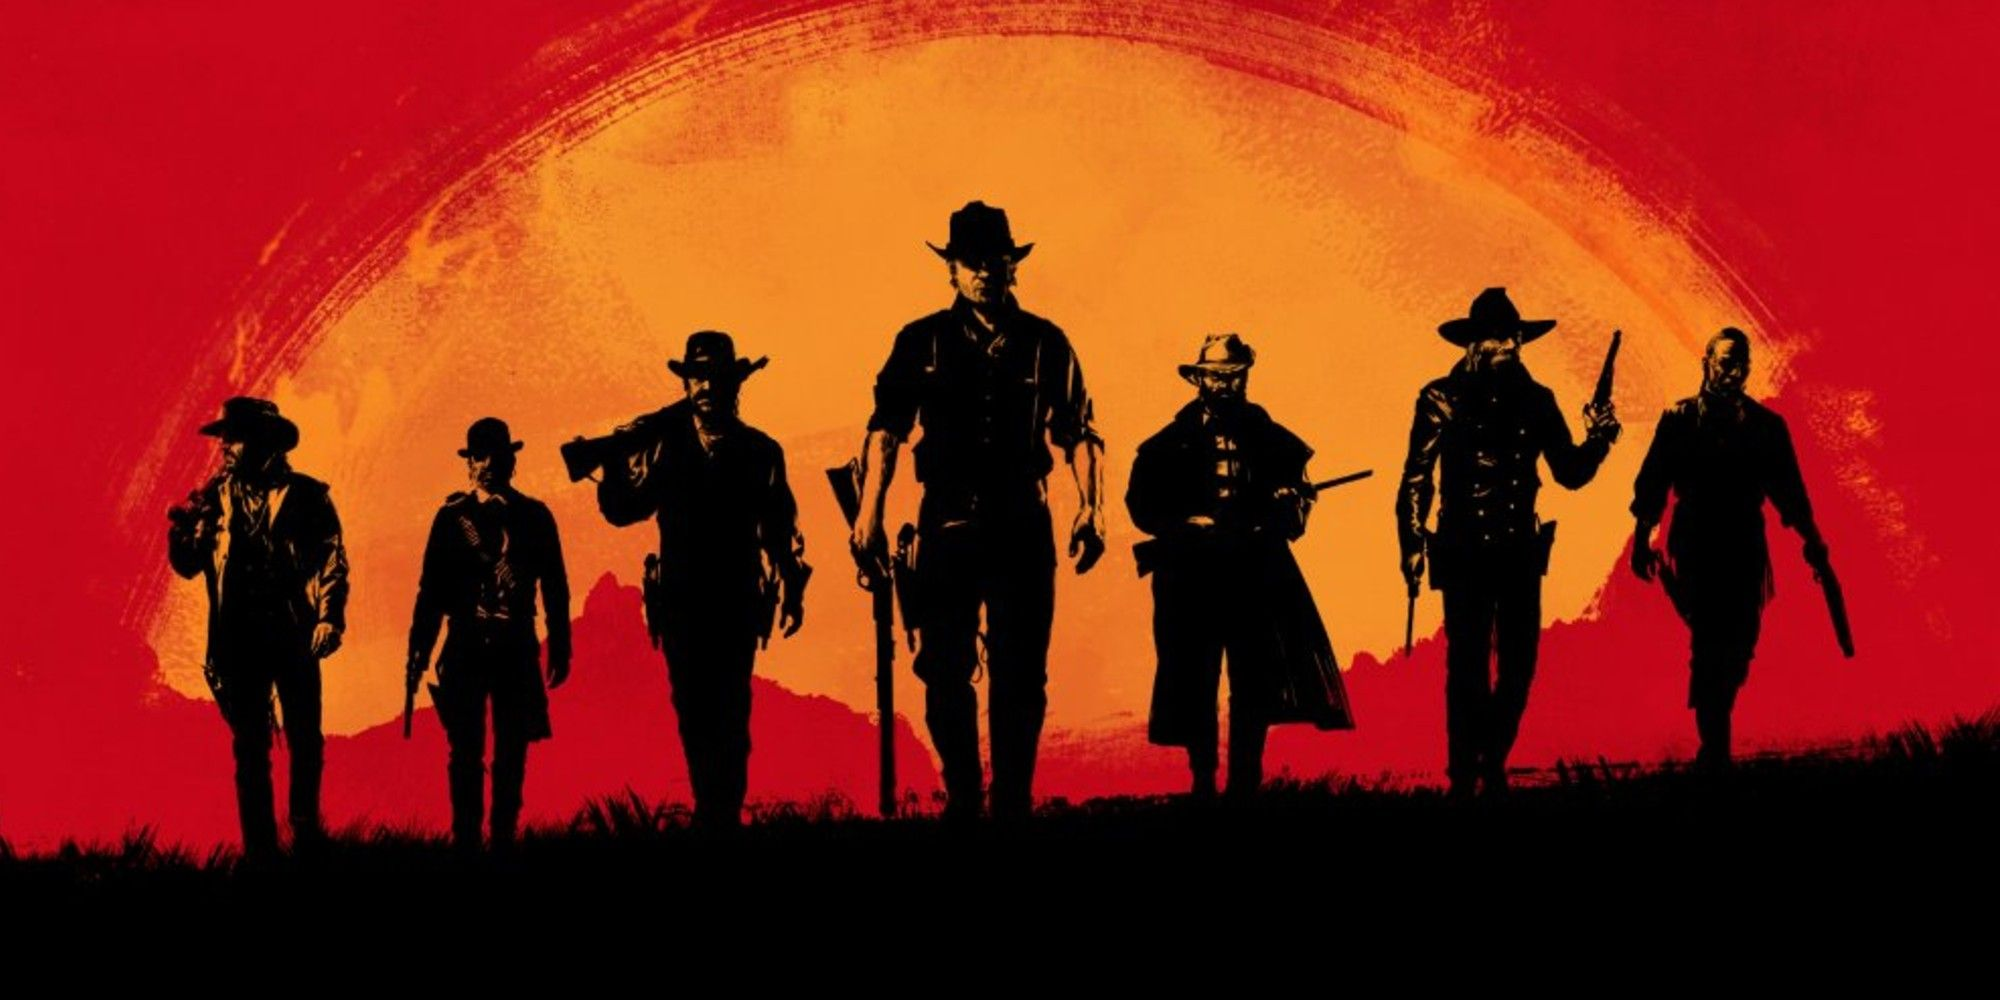 Why A Red Dead Redemption 3 Could Ruin The Franchise